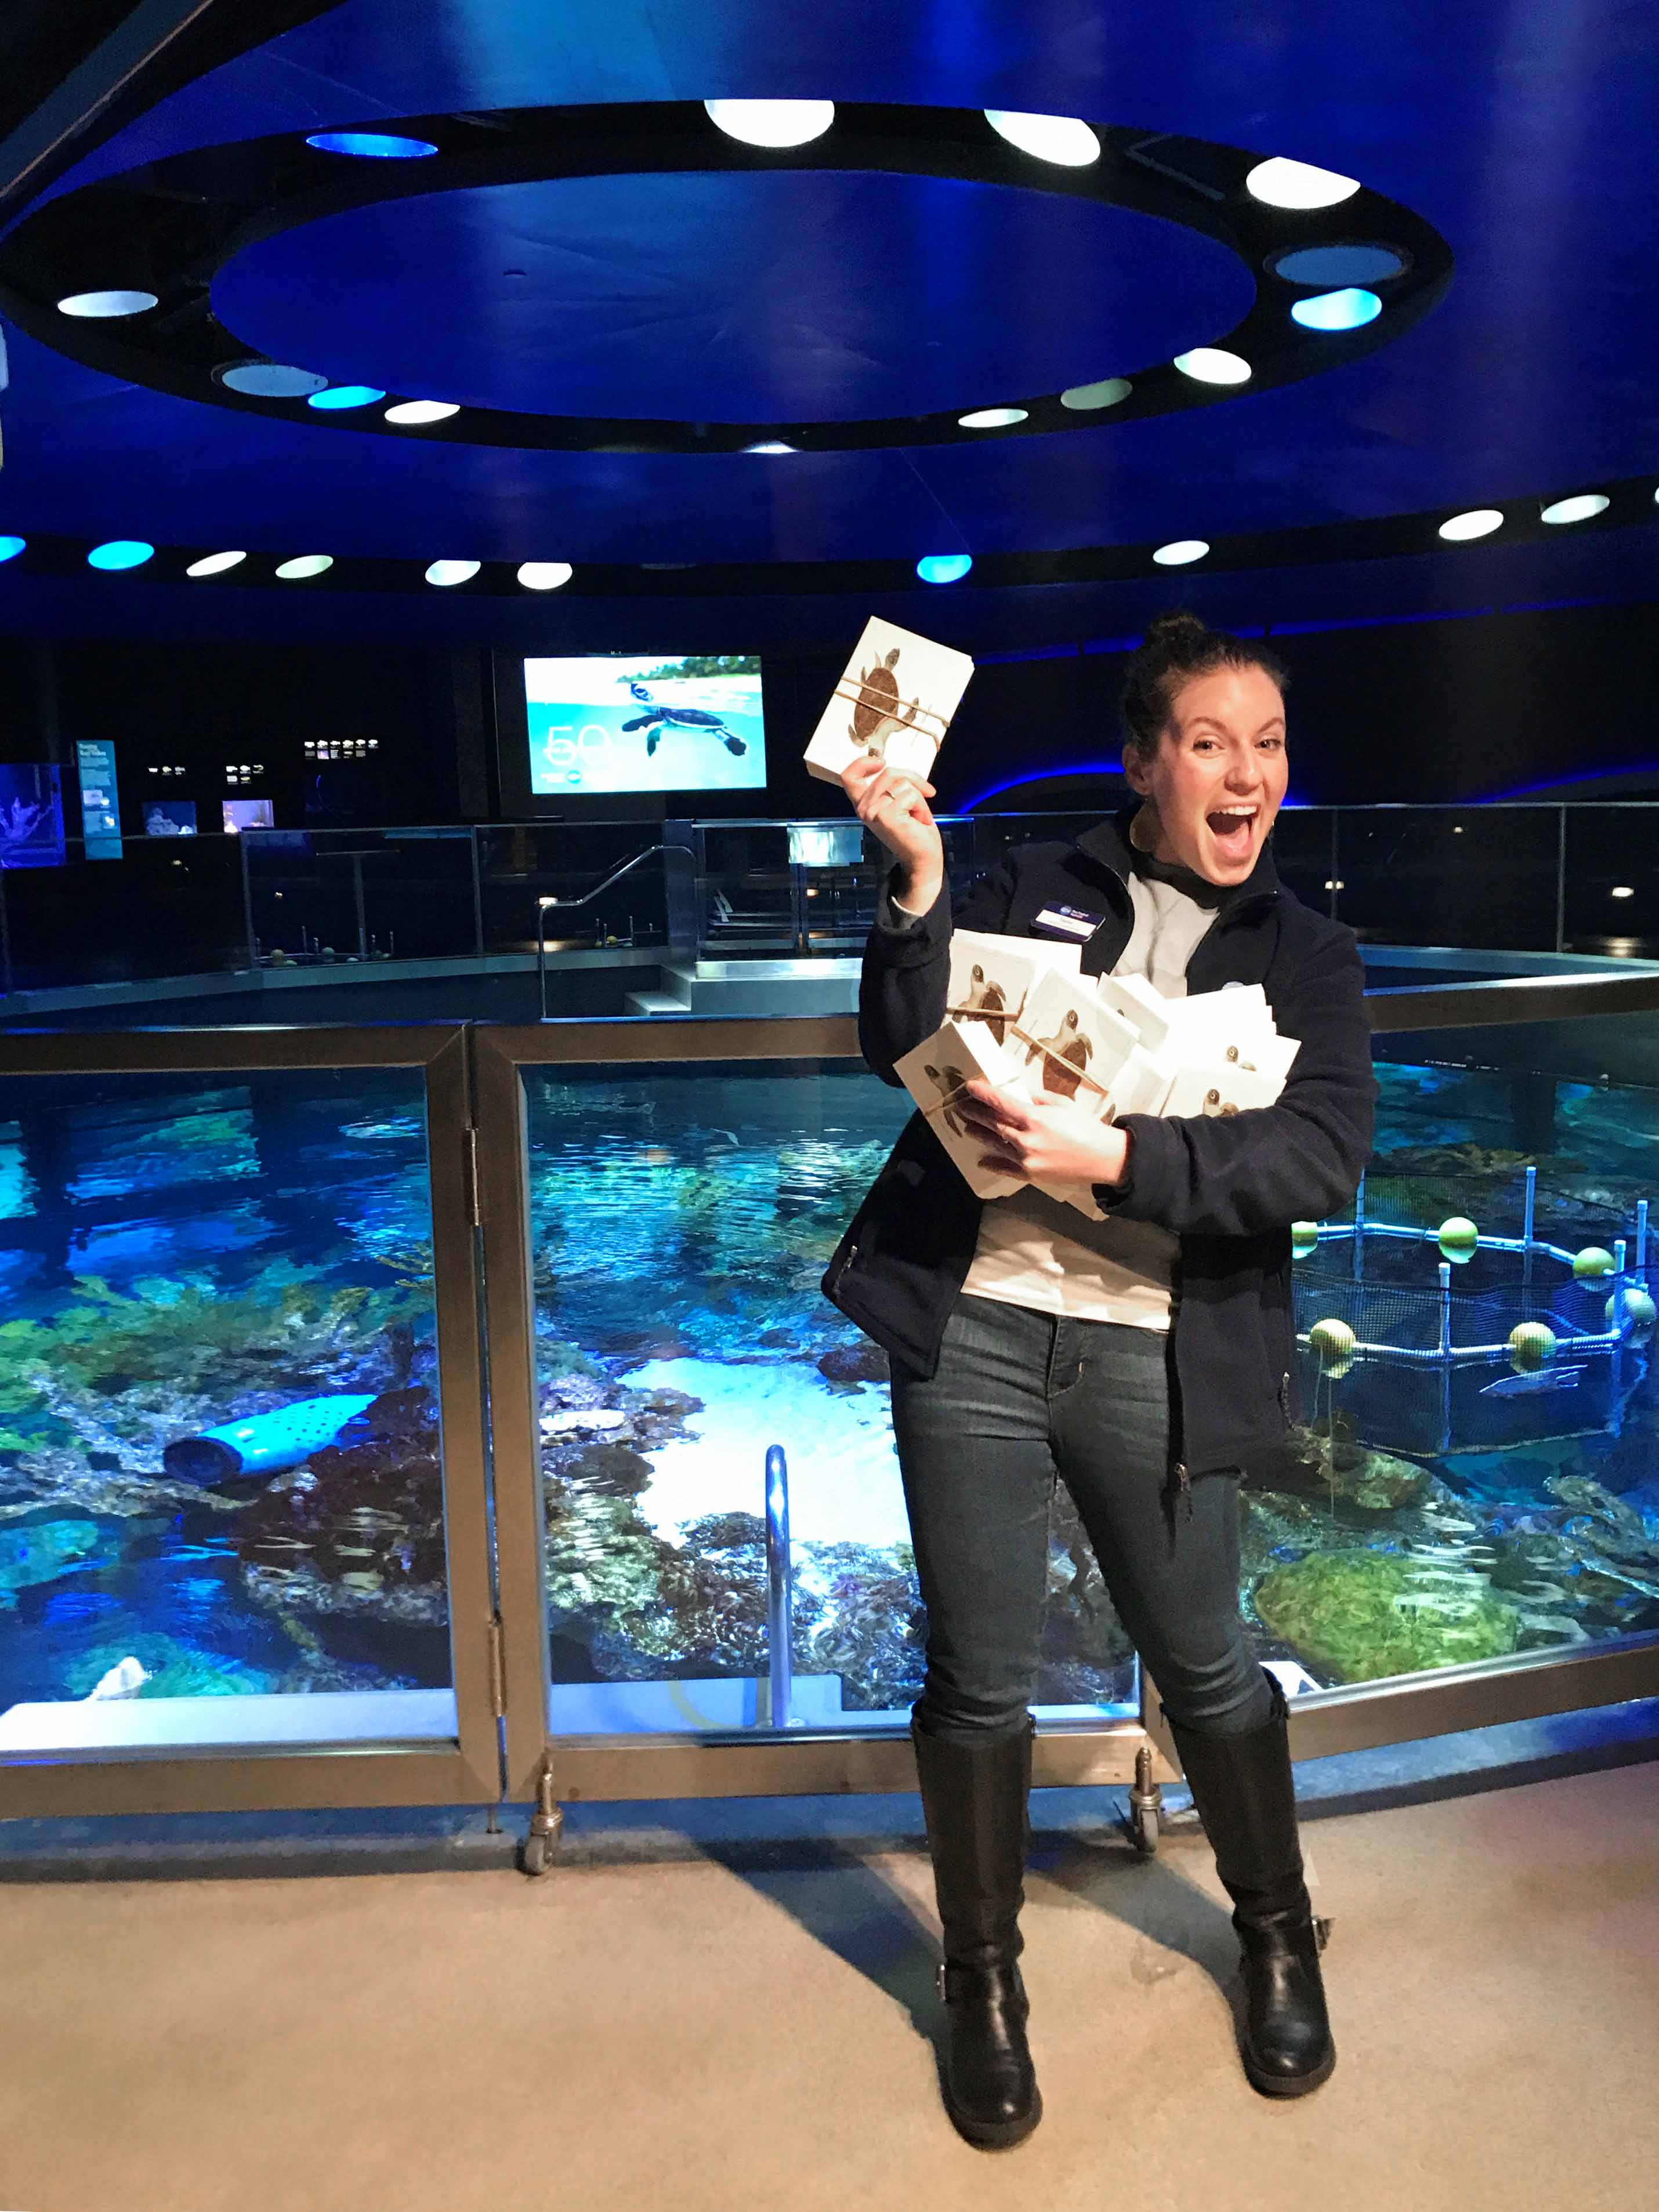 Taylor Engelsman, content and evaluation specialist at the New England Aquarium, shows off signed postcards from visitors asking their elected officials to support 30x30.